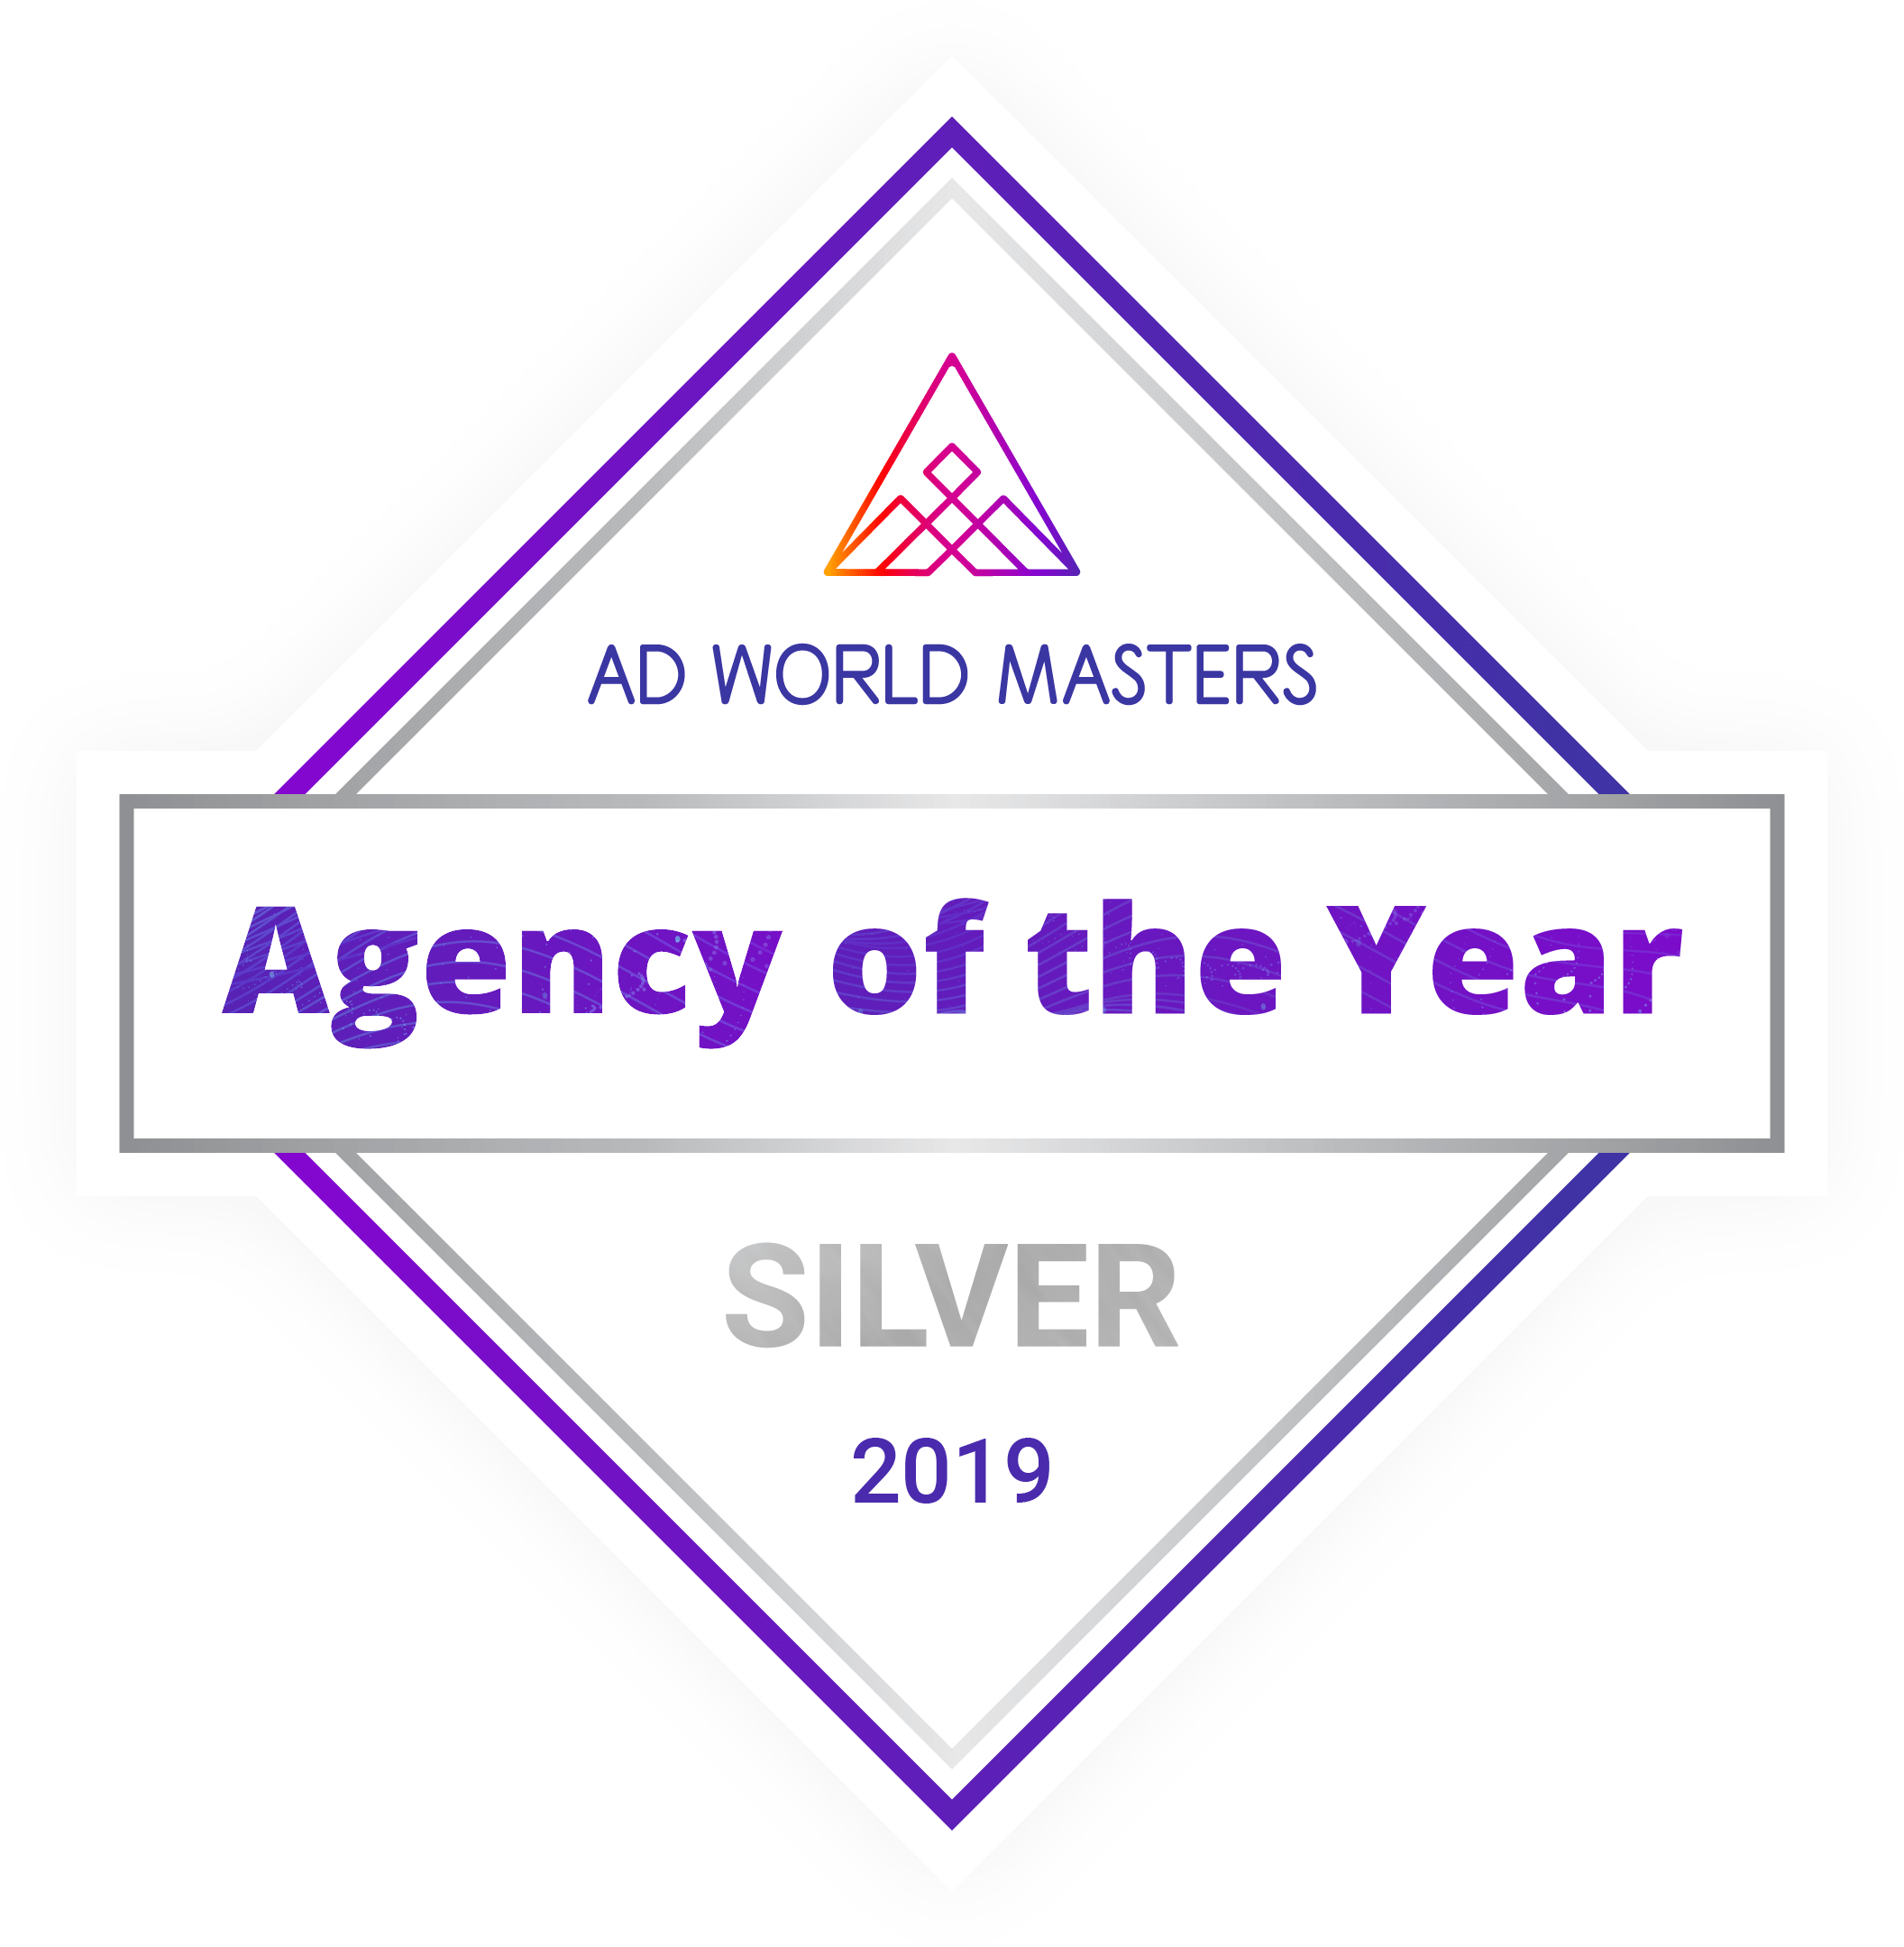 Ad World Masters Agency of the year